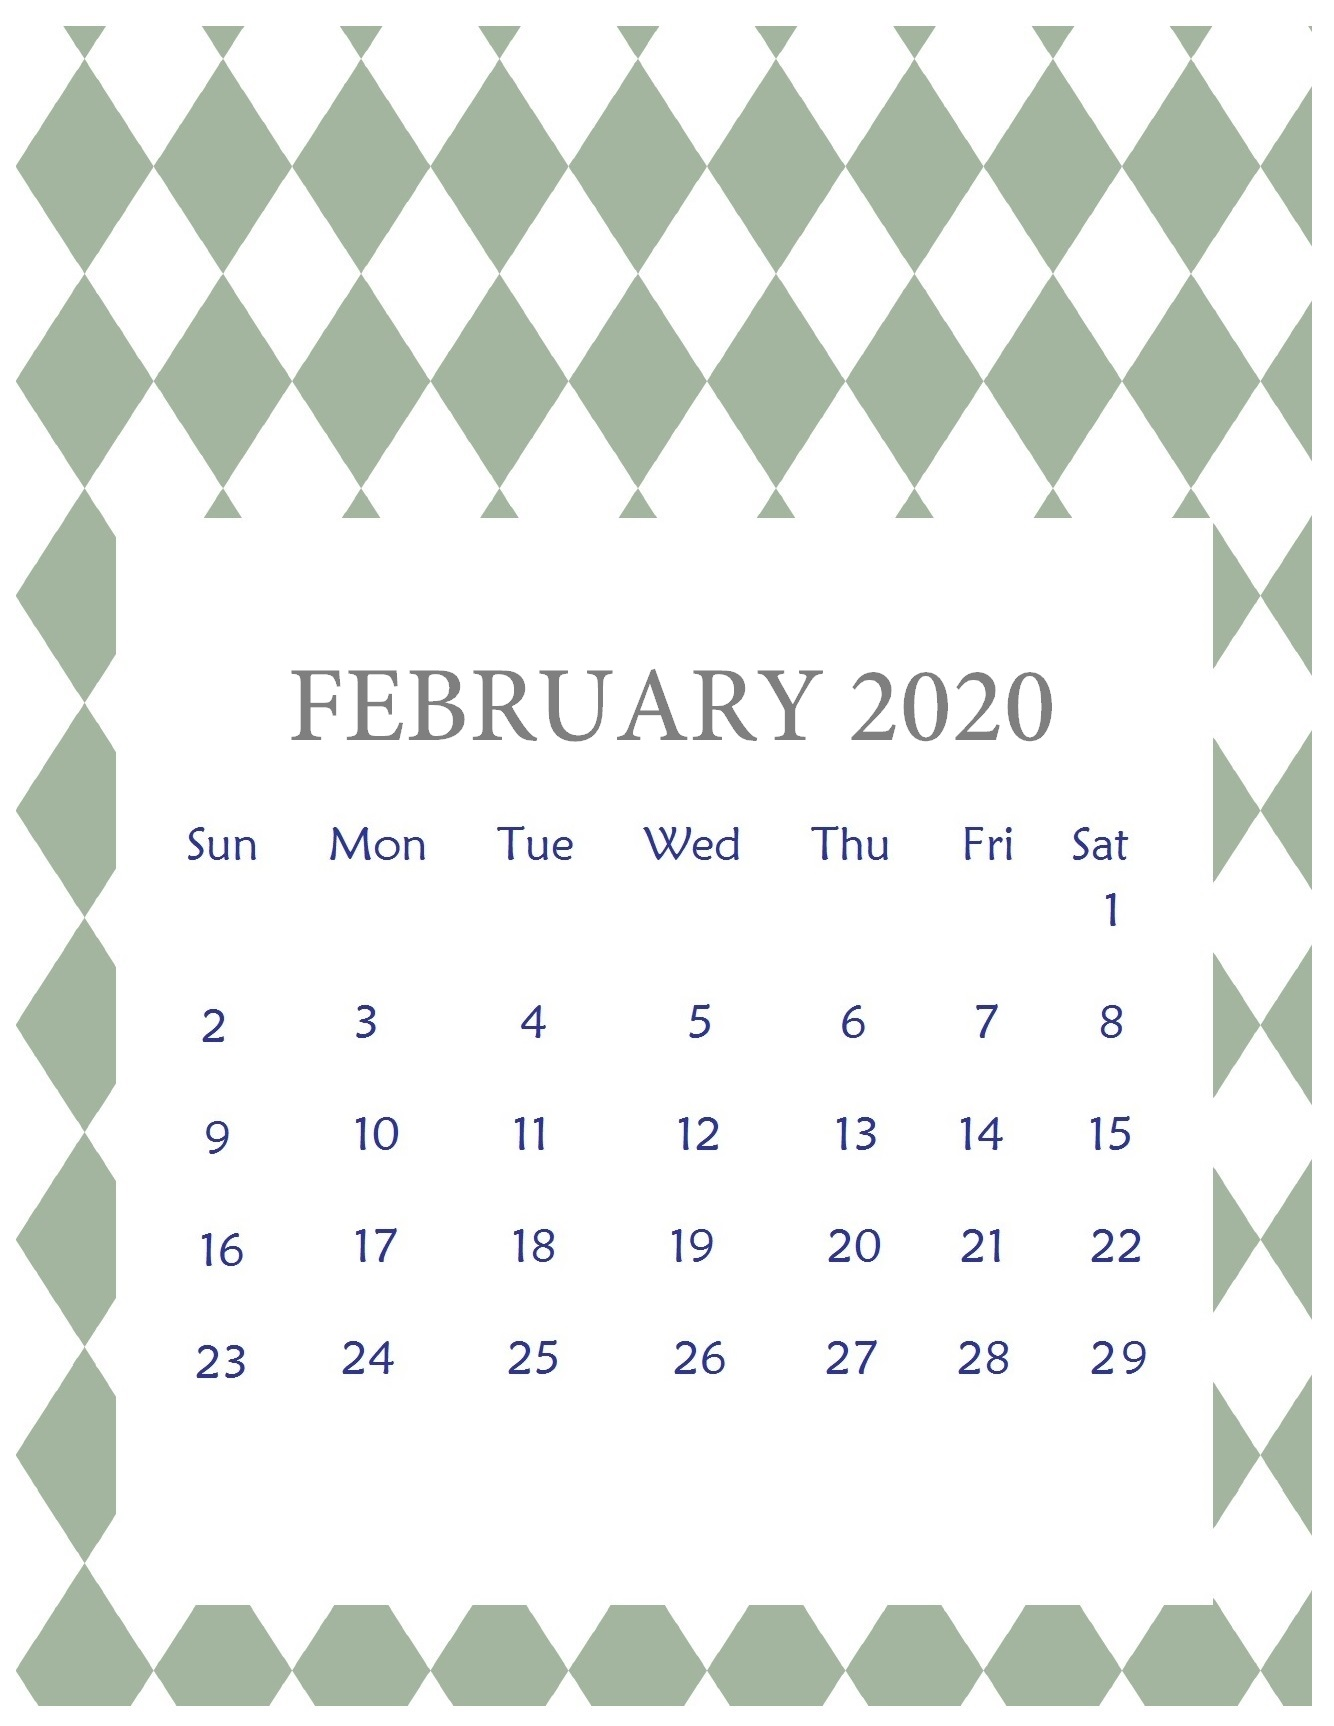 February 2020 Calendar HD Wallpaper